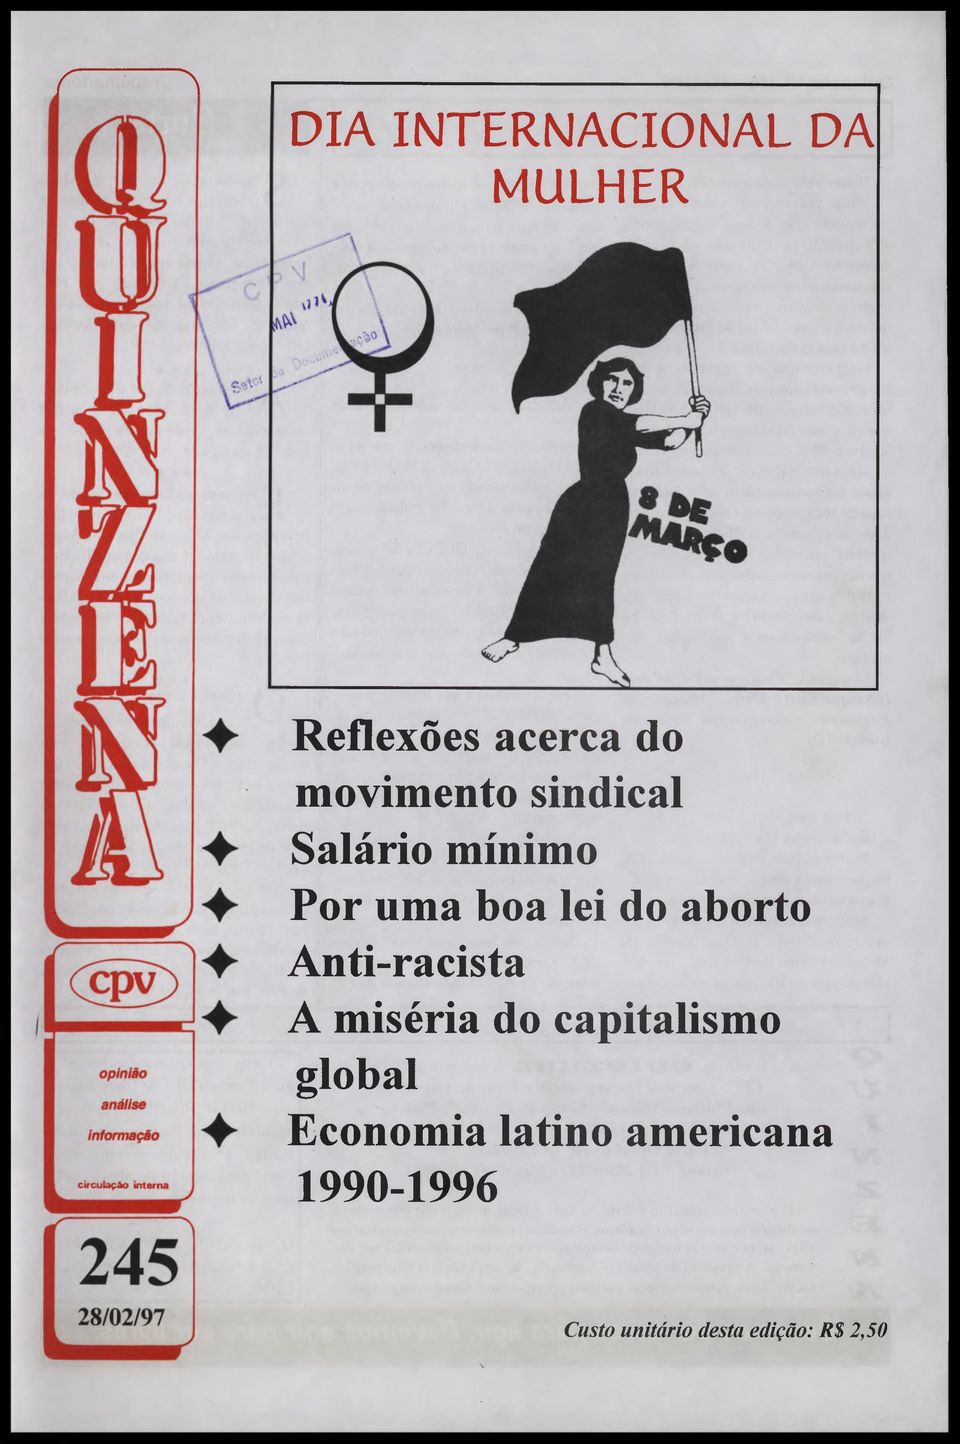 aborto Anti-racista A miséria do capitalismo global